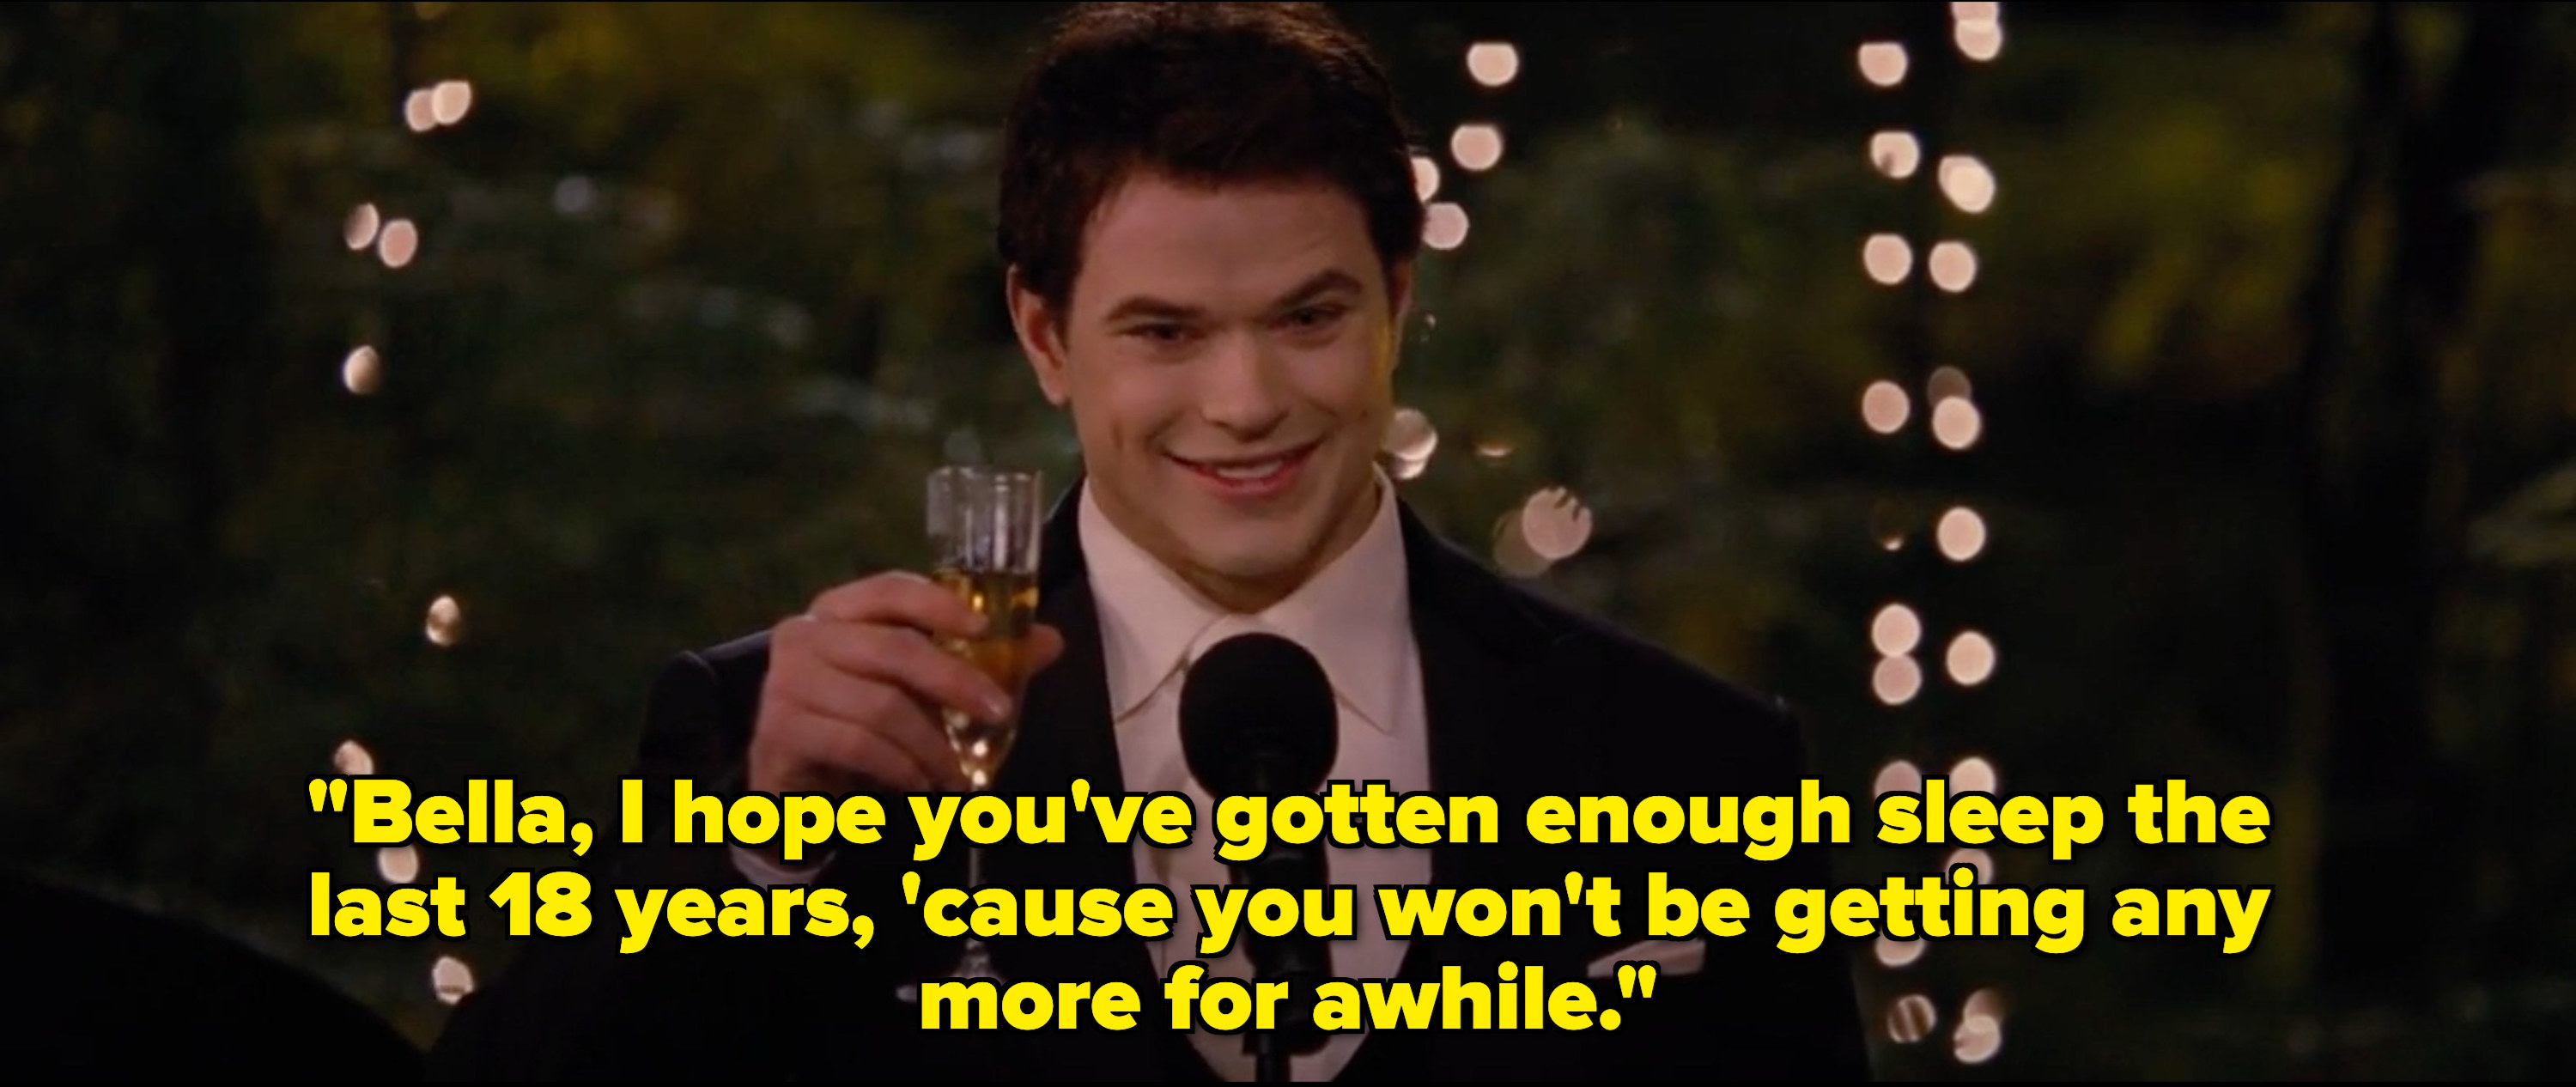 Emmett and Bella and Edward's wedding, holding up a glass to toast